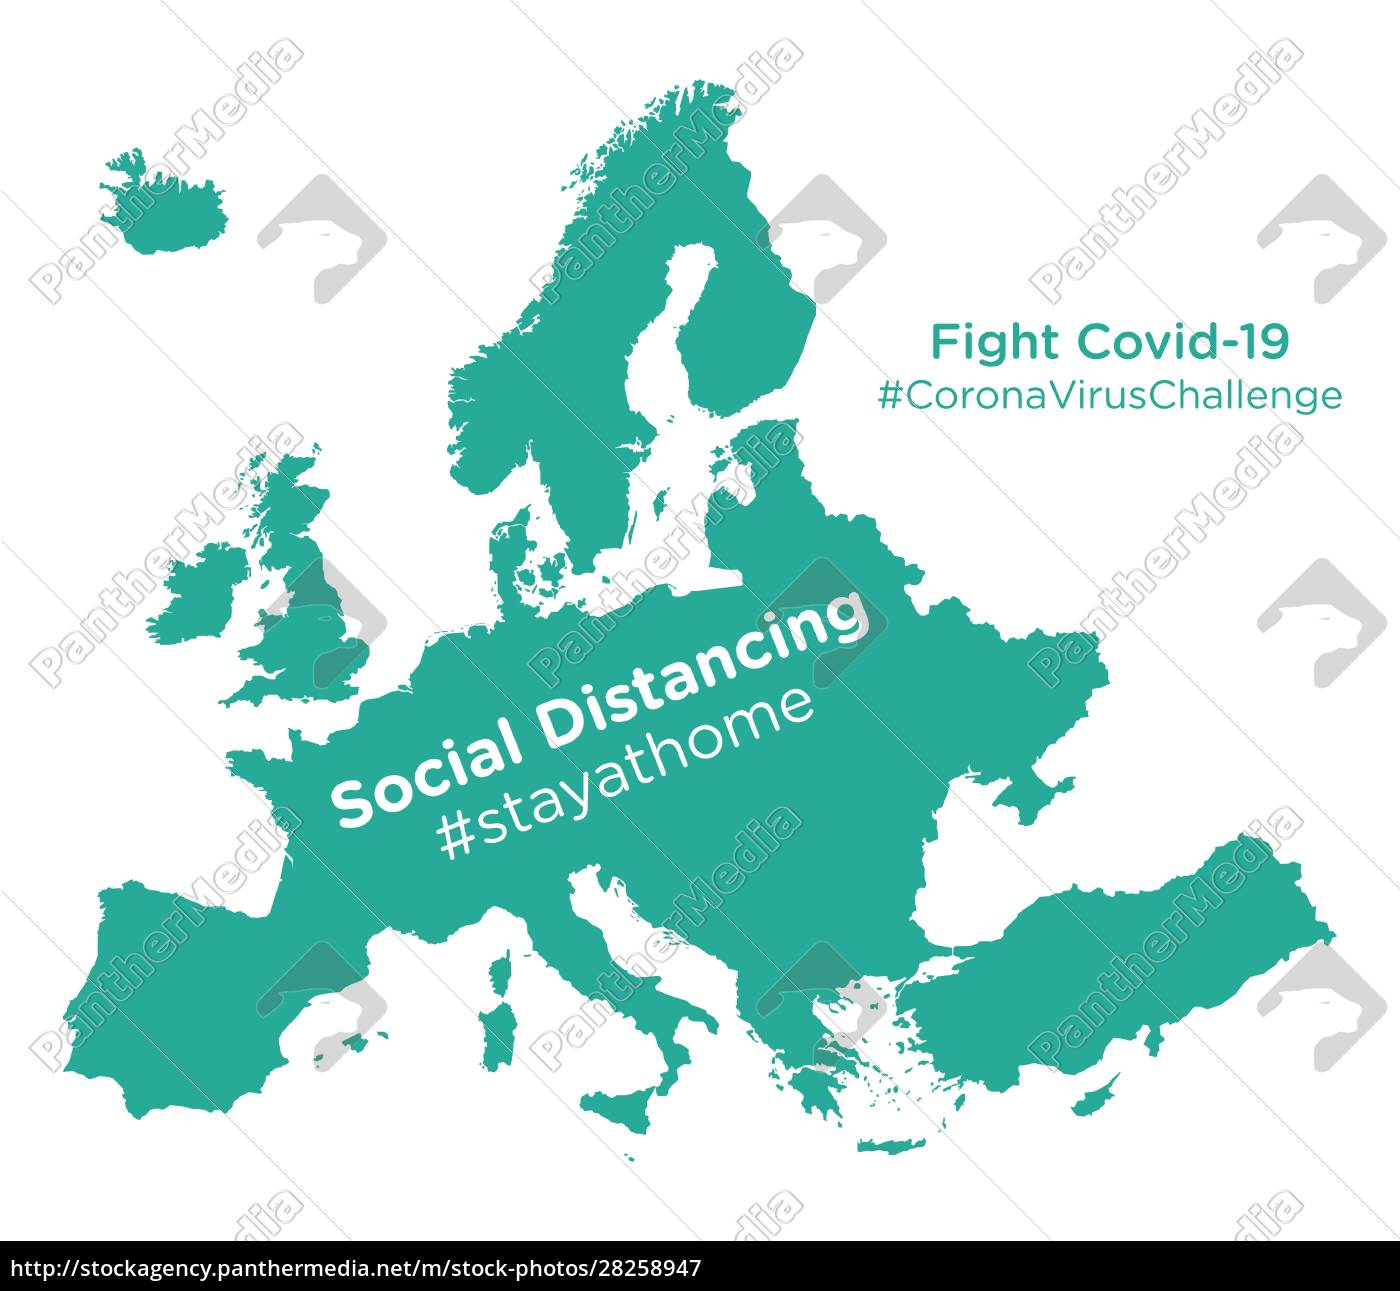 europe, map, with, social, distancing, #stayathome - 28258947